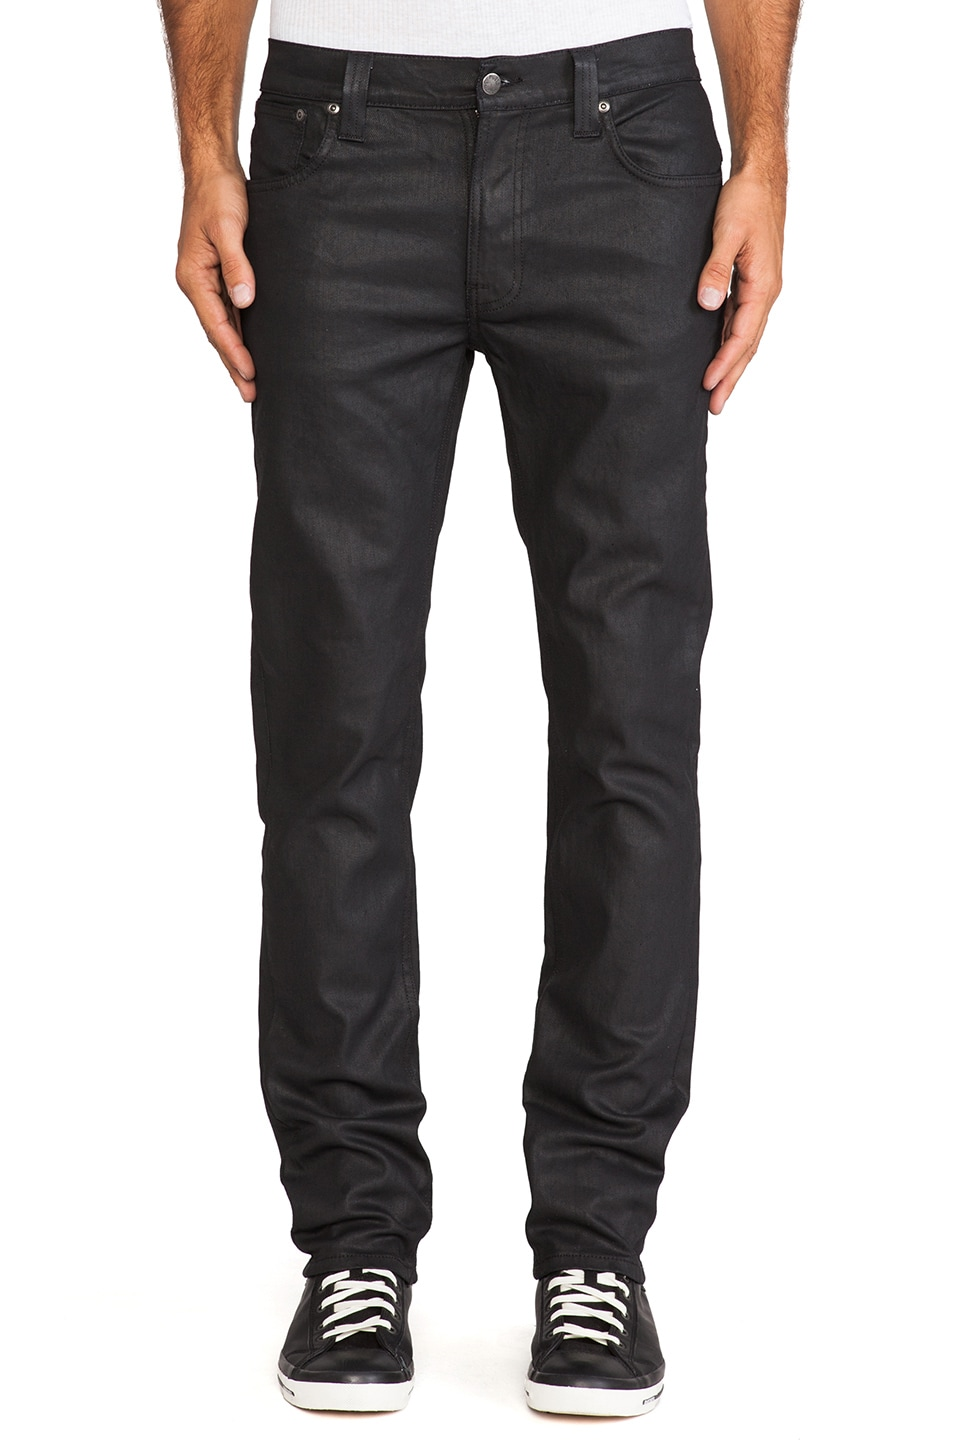 Nudie Jeans Thin Finn in Dry Back 2 Black